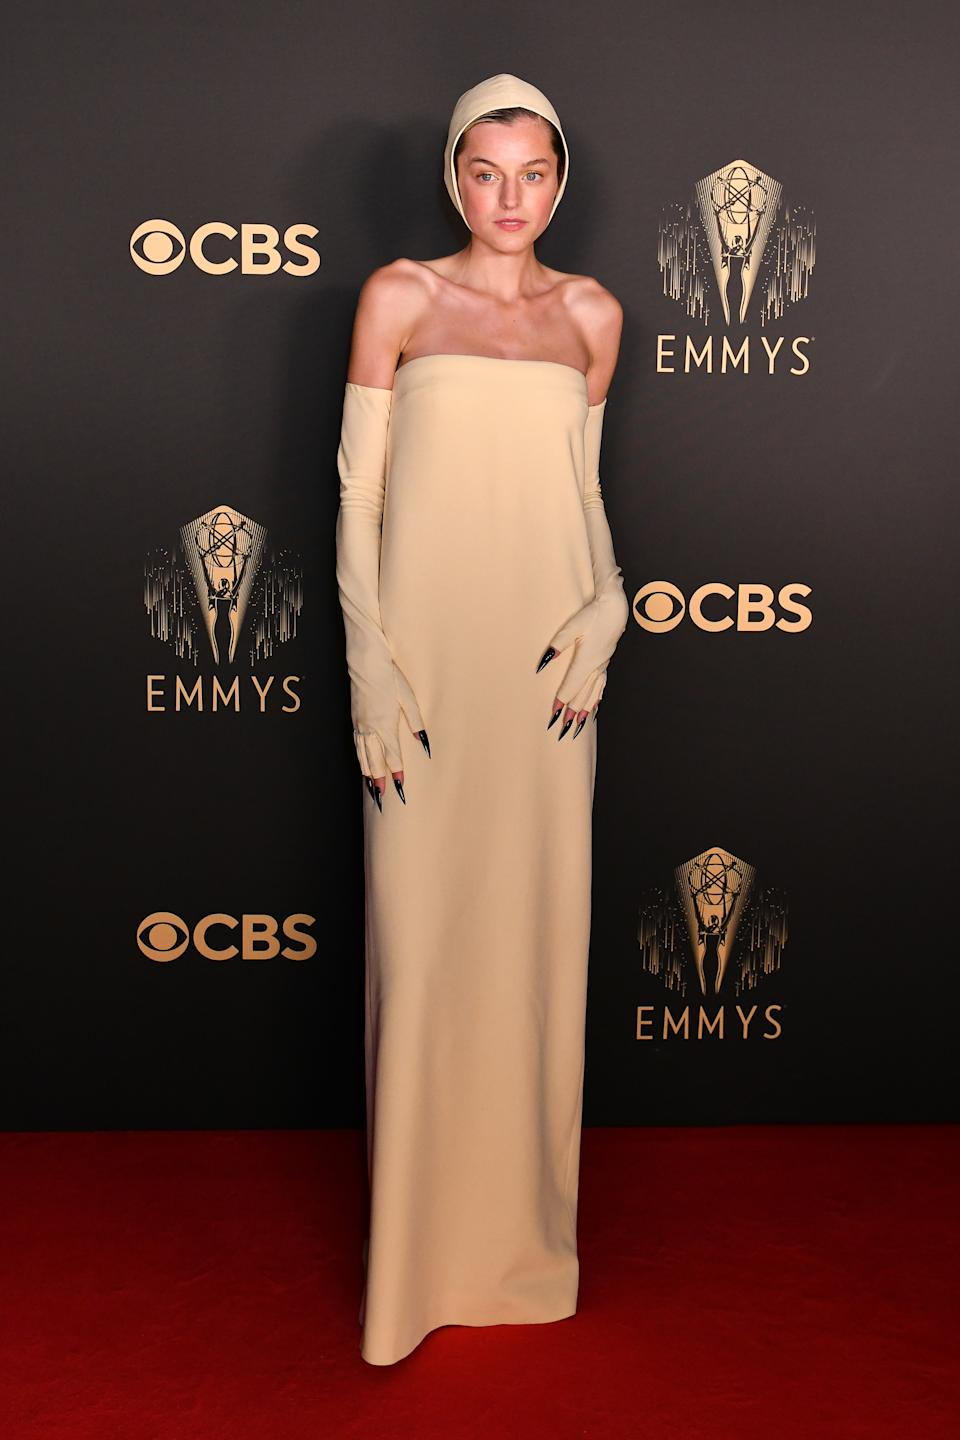 Emma Corrin wears a cream strapless column dress, long gloves and a bonnet at the Netflix celebration of the 73rd Emmy Awards at 180 The Strand on September 19, 2021 in London, England. (Photo by David M. Benett/Dave Benett/Getty Images for Netflix)